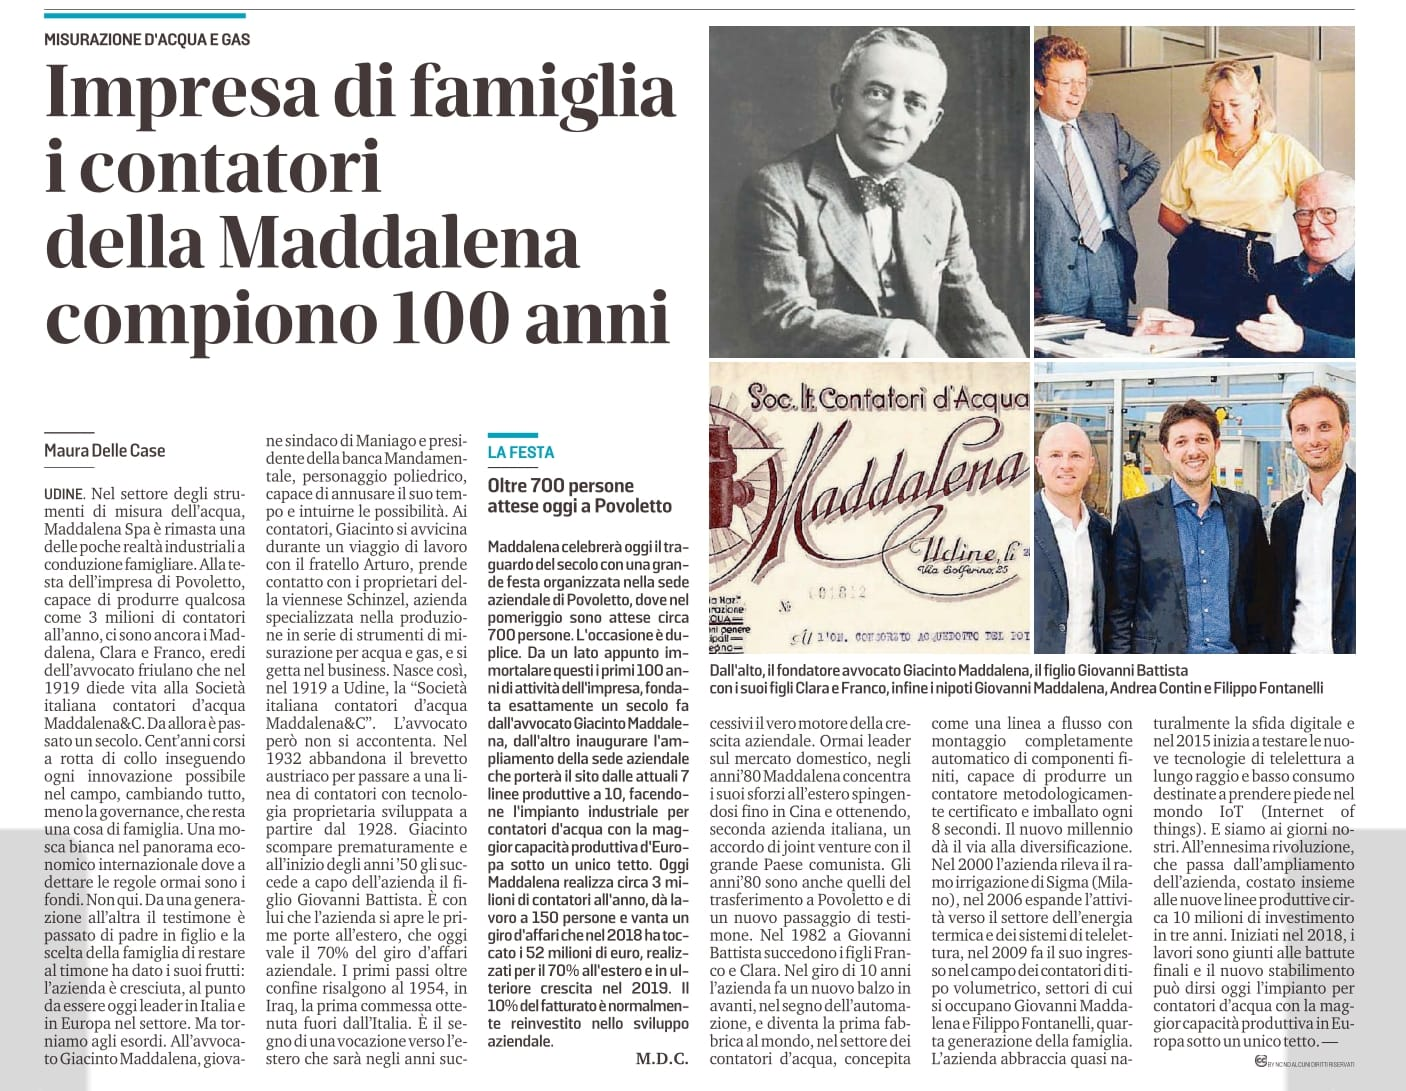 Article Maddalena celebrates 100 years